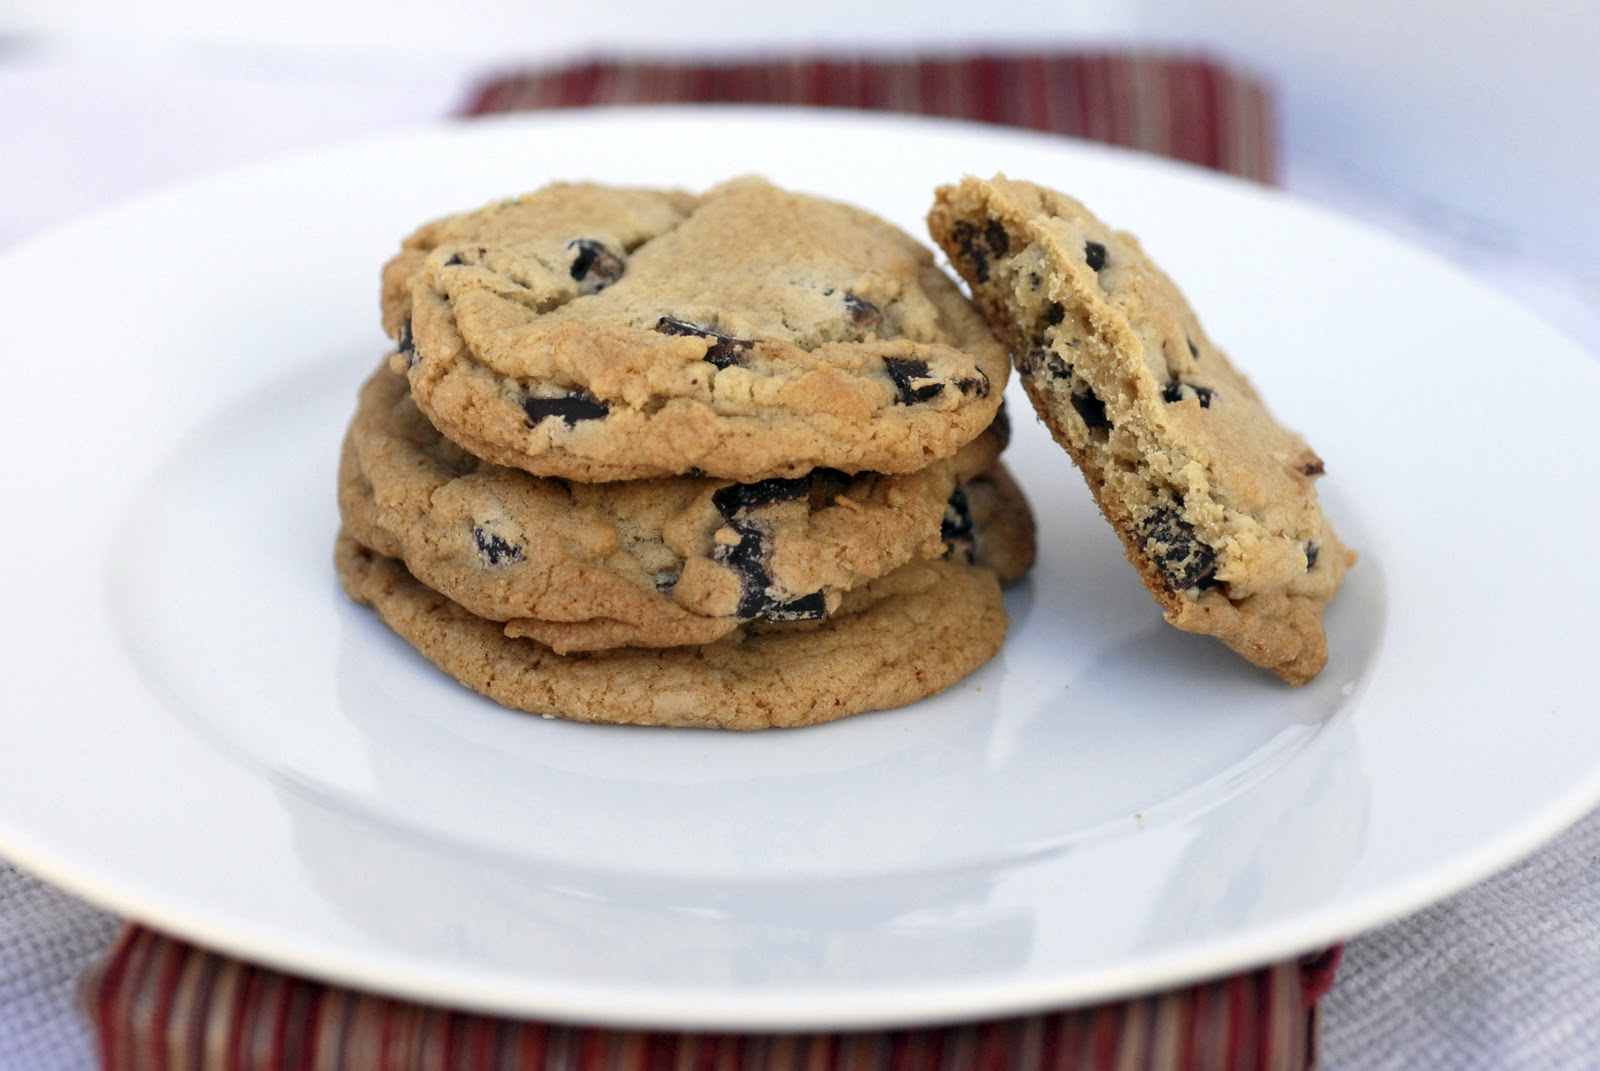 Night Baking: eric wolitzky's chocolate chip cookies